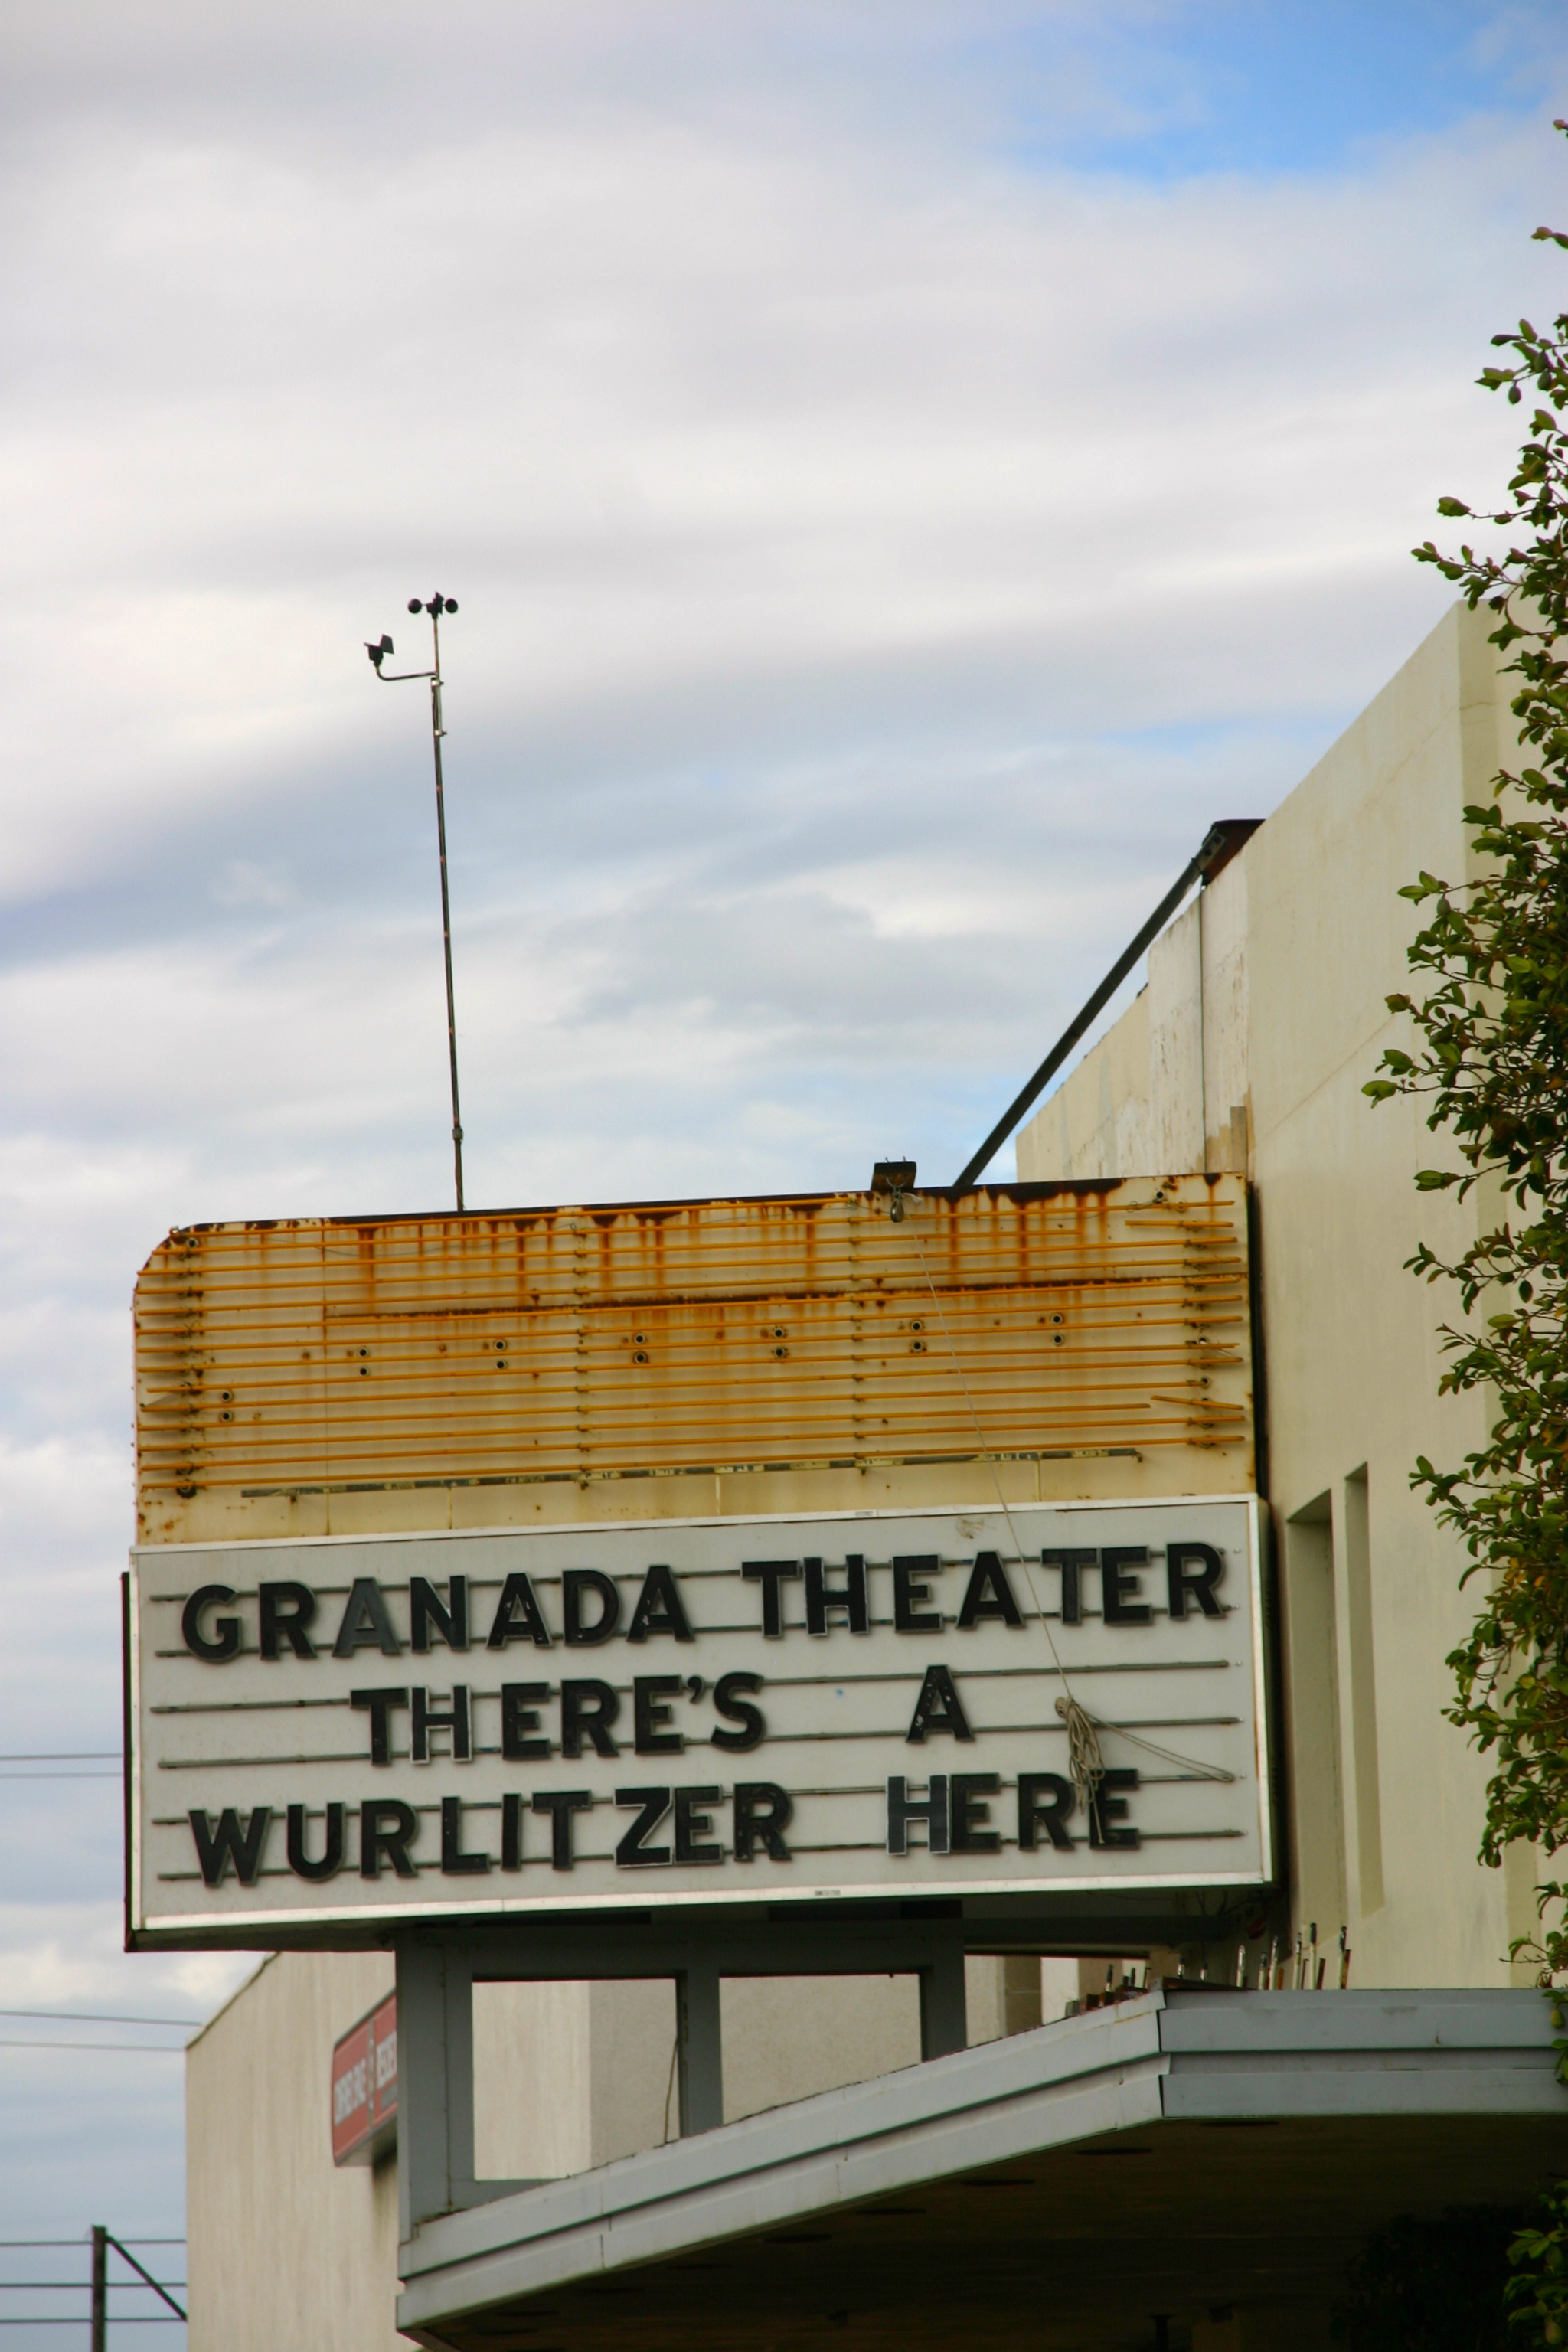 a wurlitzer what.jpg